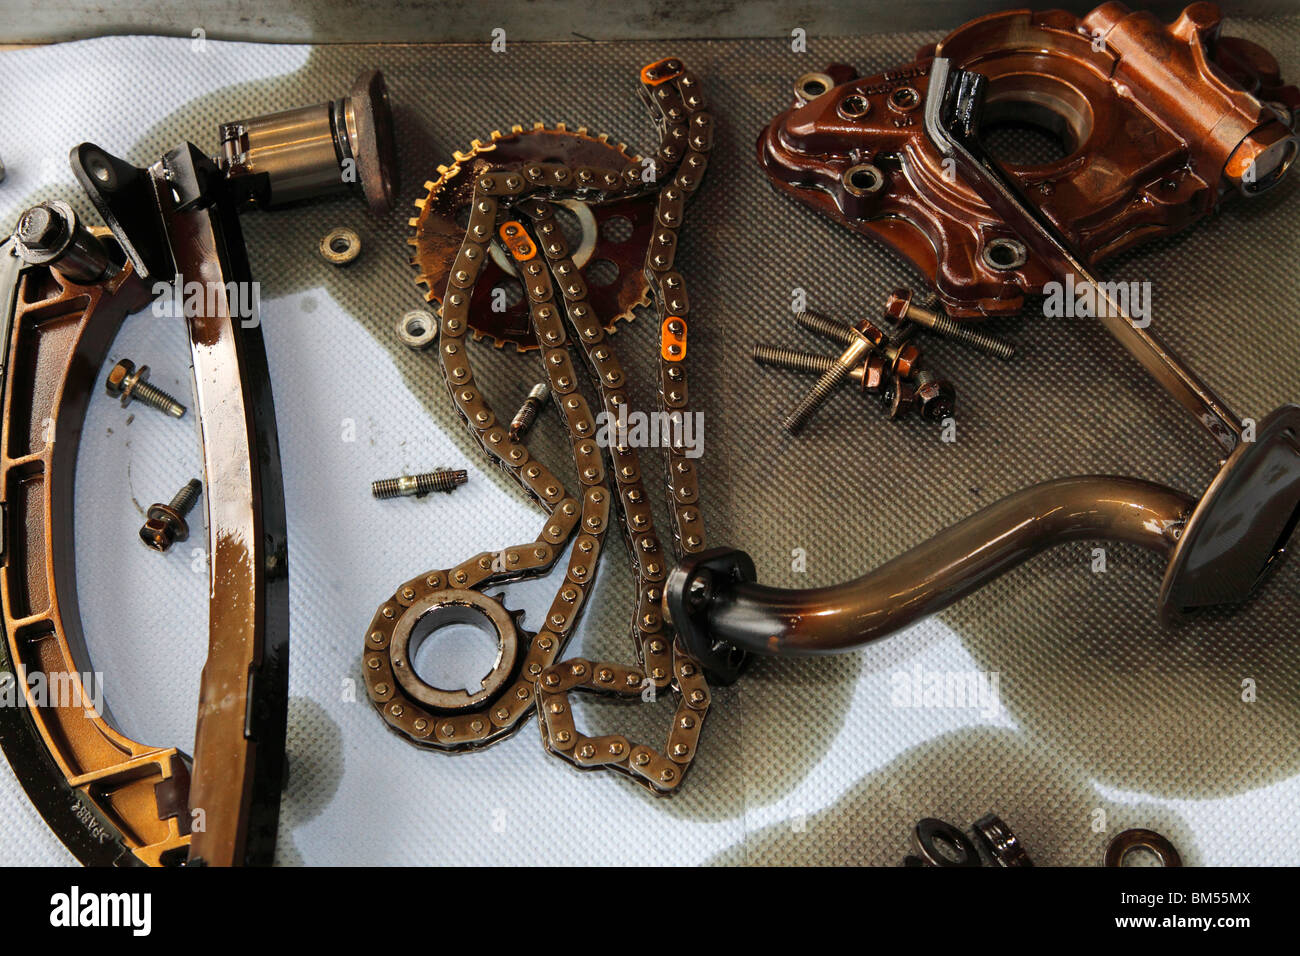 parts of a Toyota Avensis engine in an oilpan; engine changing after a product recall - Stock Image